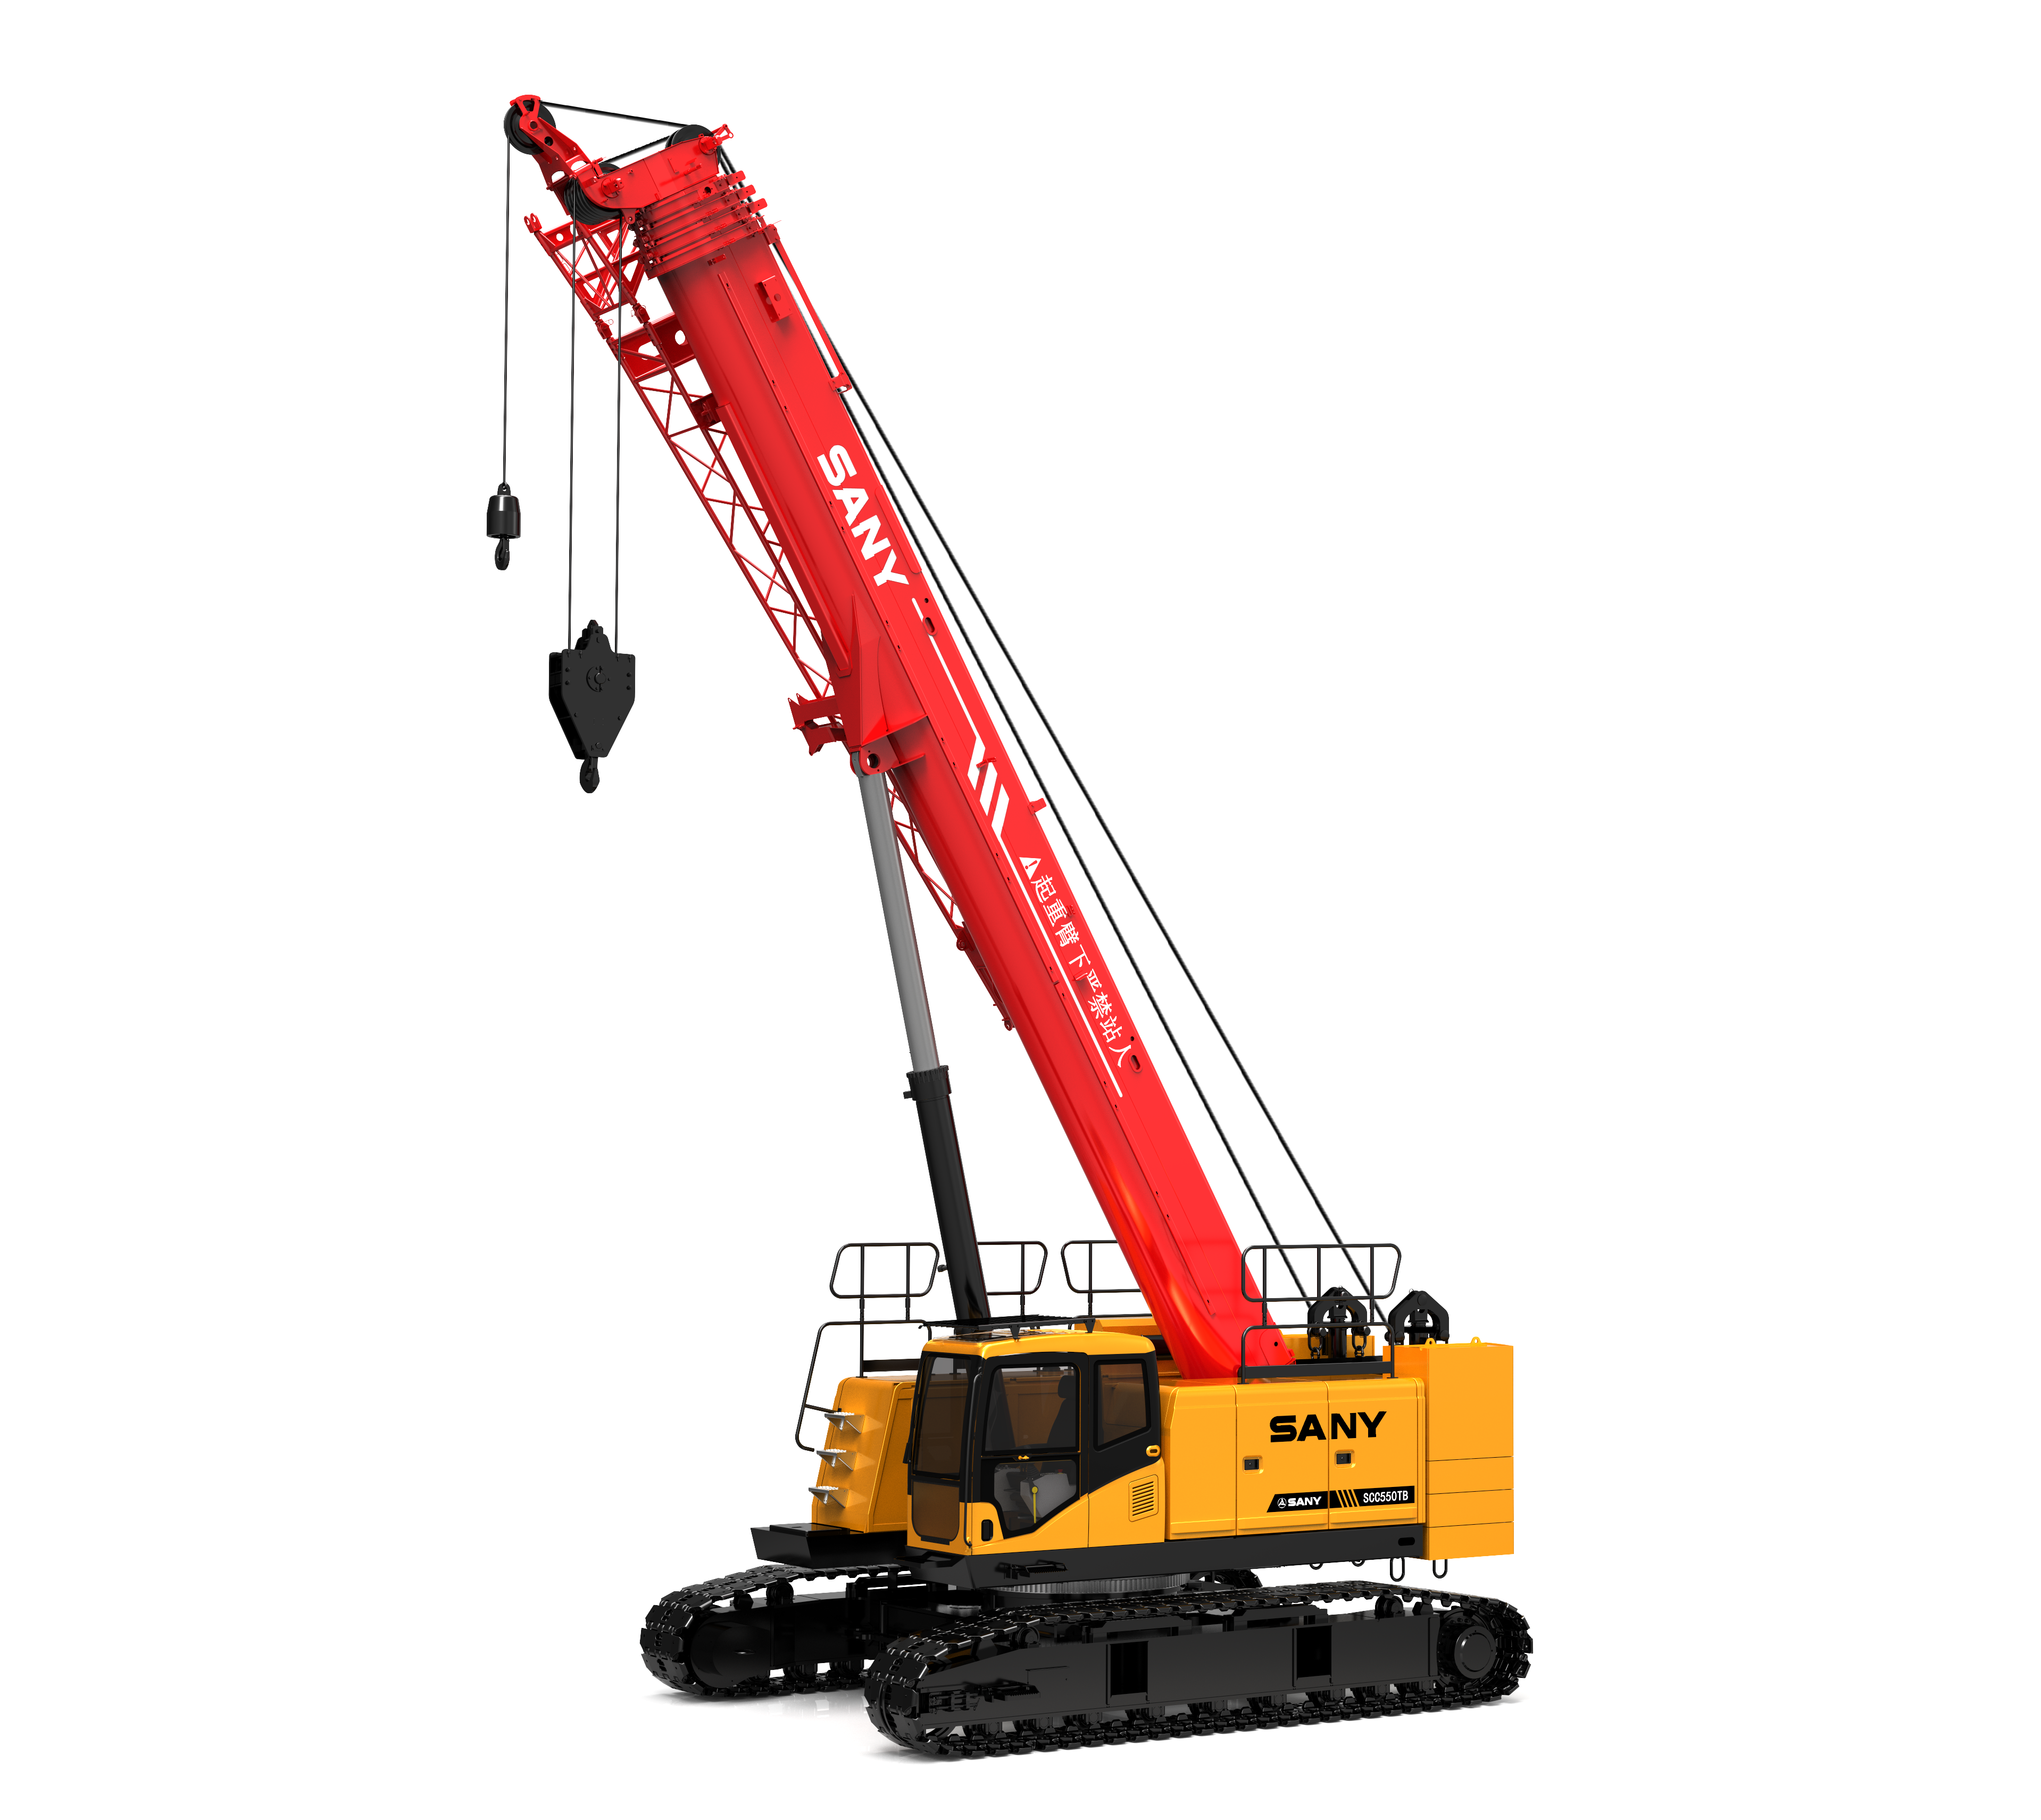 crawler crane telescopic crawler cranes for sale sany #36694